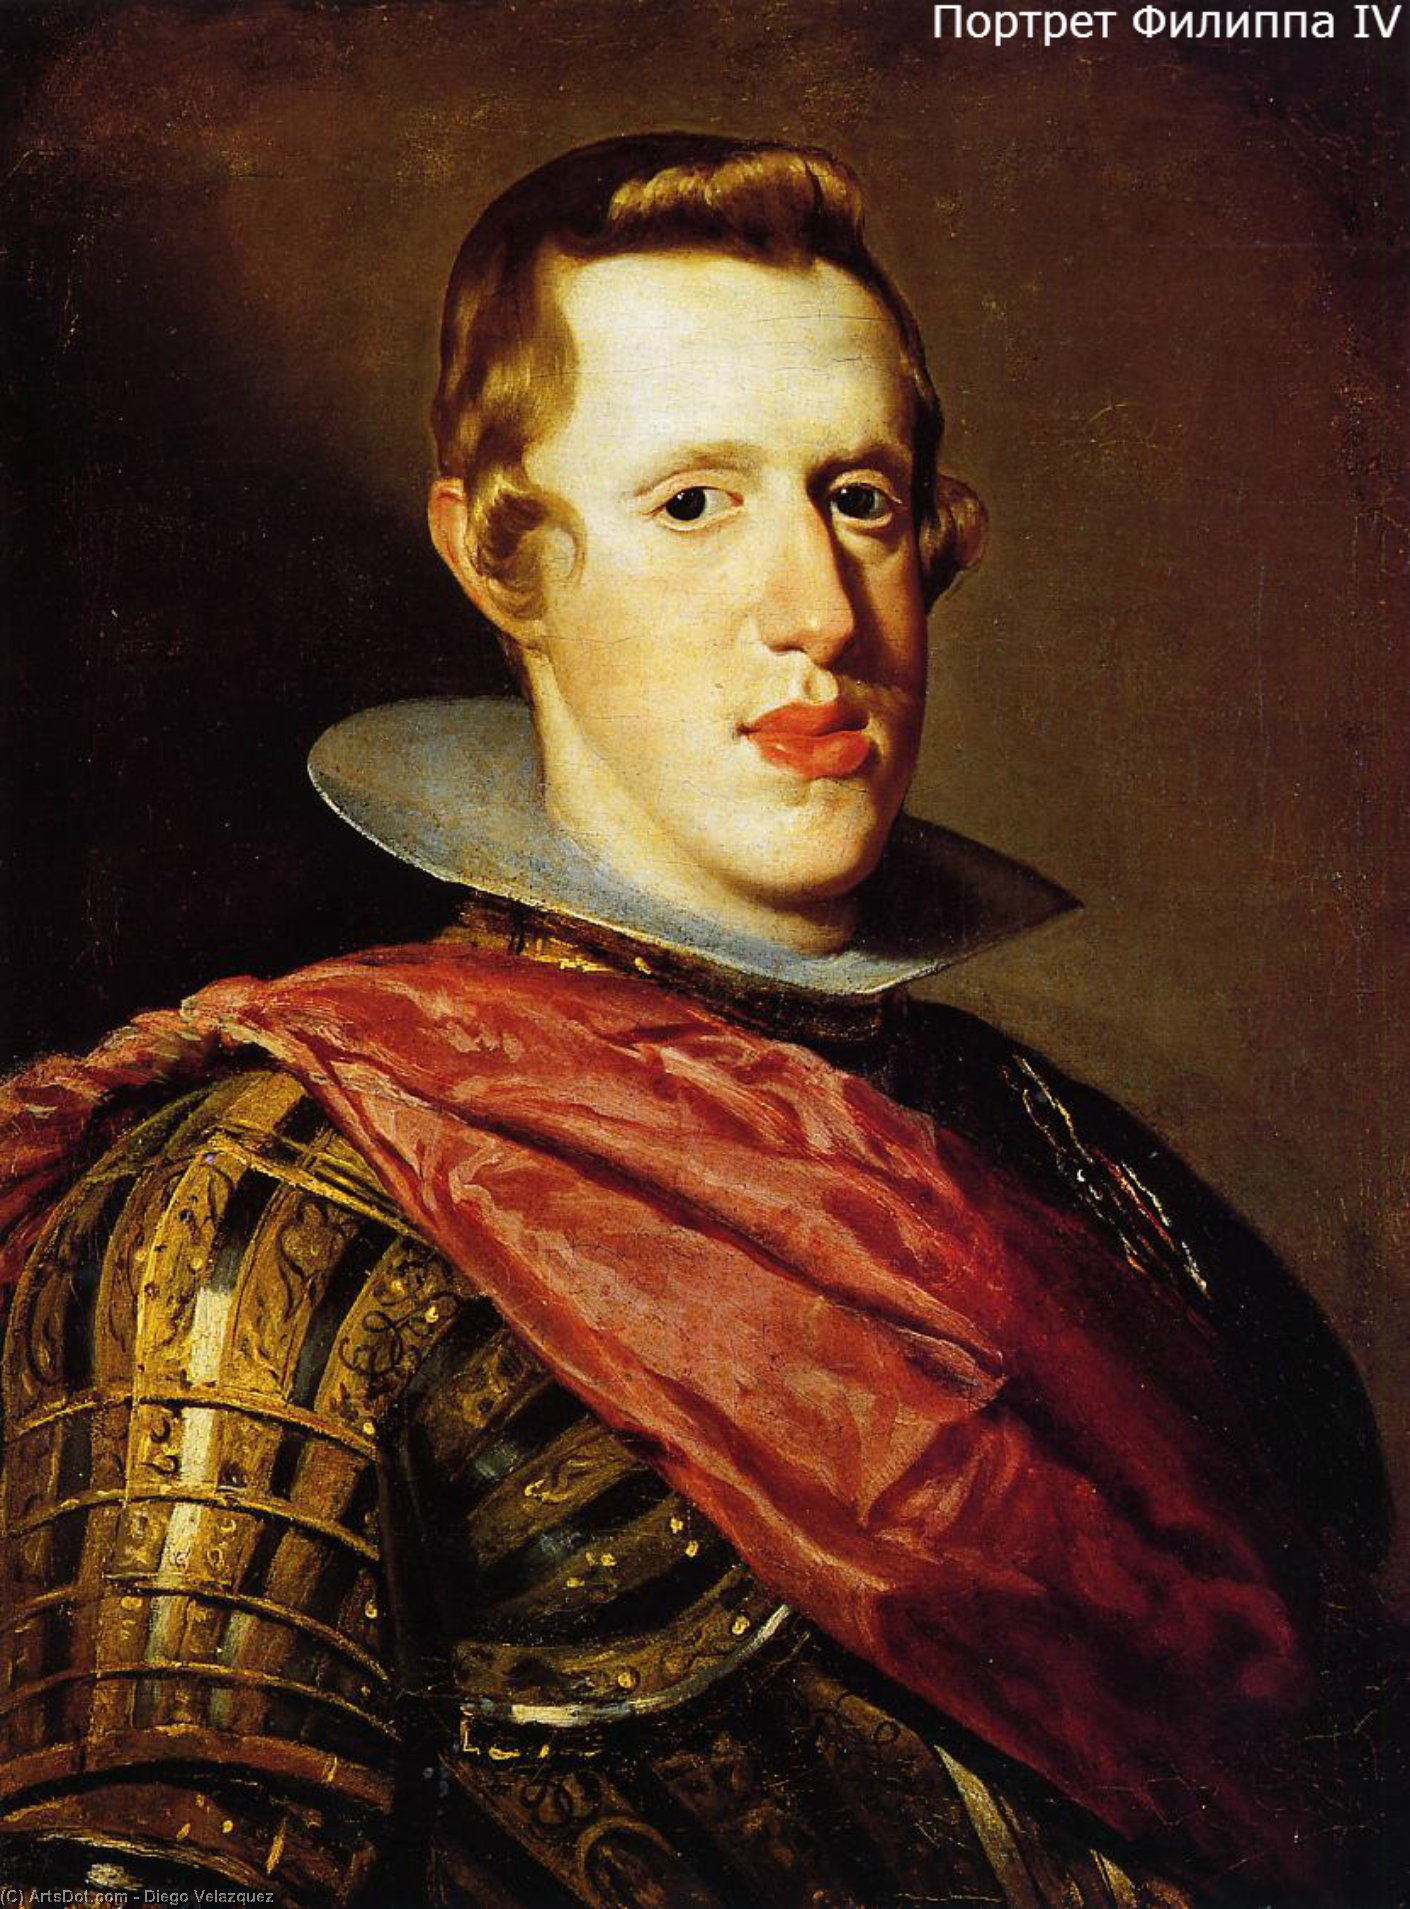 Philip IV in Armor, Oil On Canvas by Diego Velazquez (1599-1660, Spain)